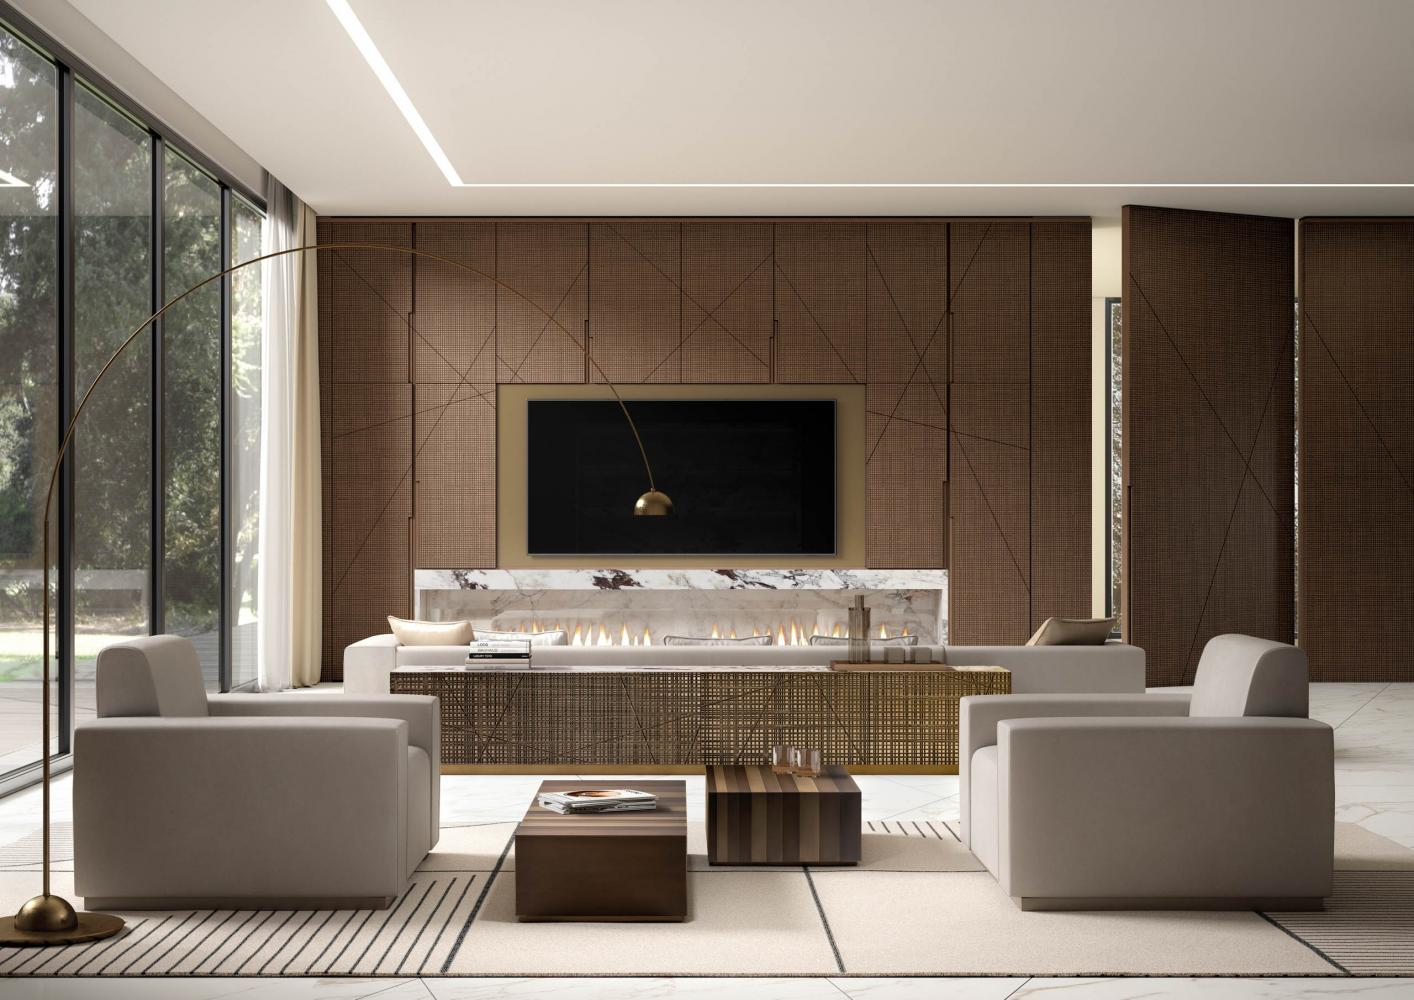 Laurameroni luxury modern made to measure bespoke freestanding furniture for contemporary livingroom interior decor and design